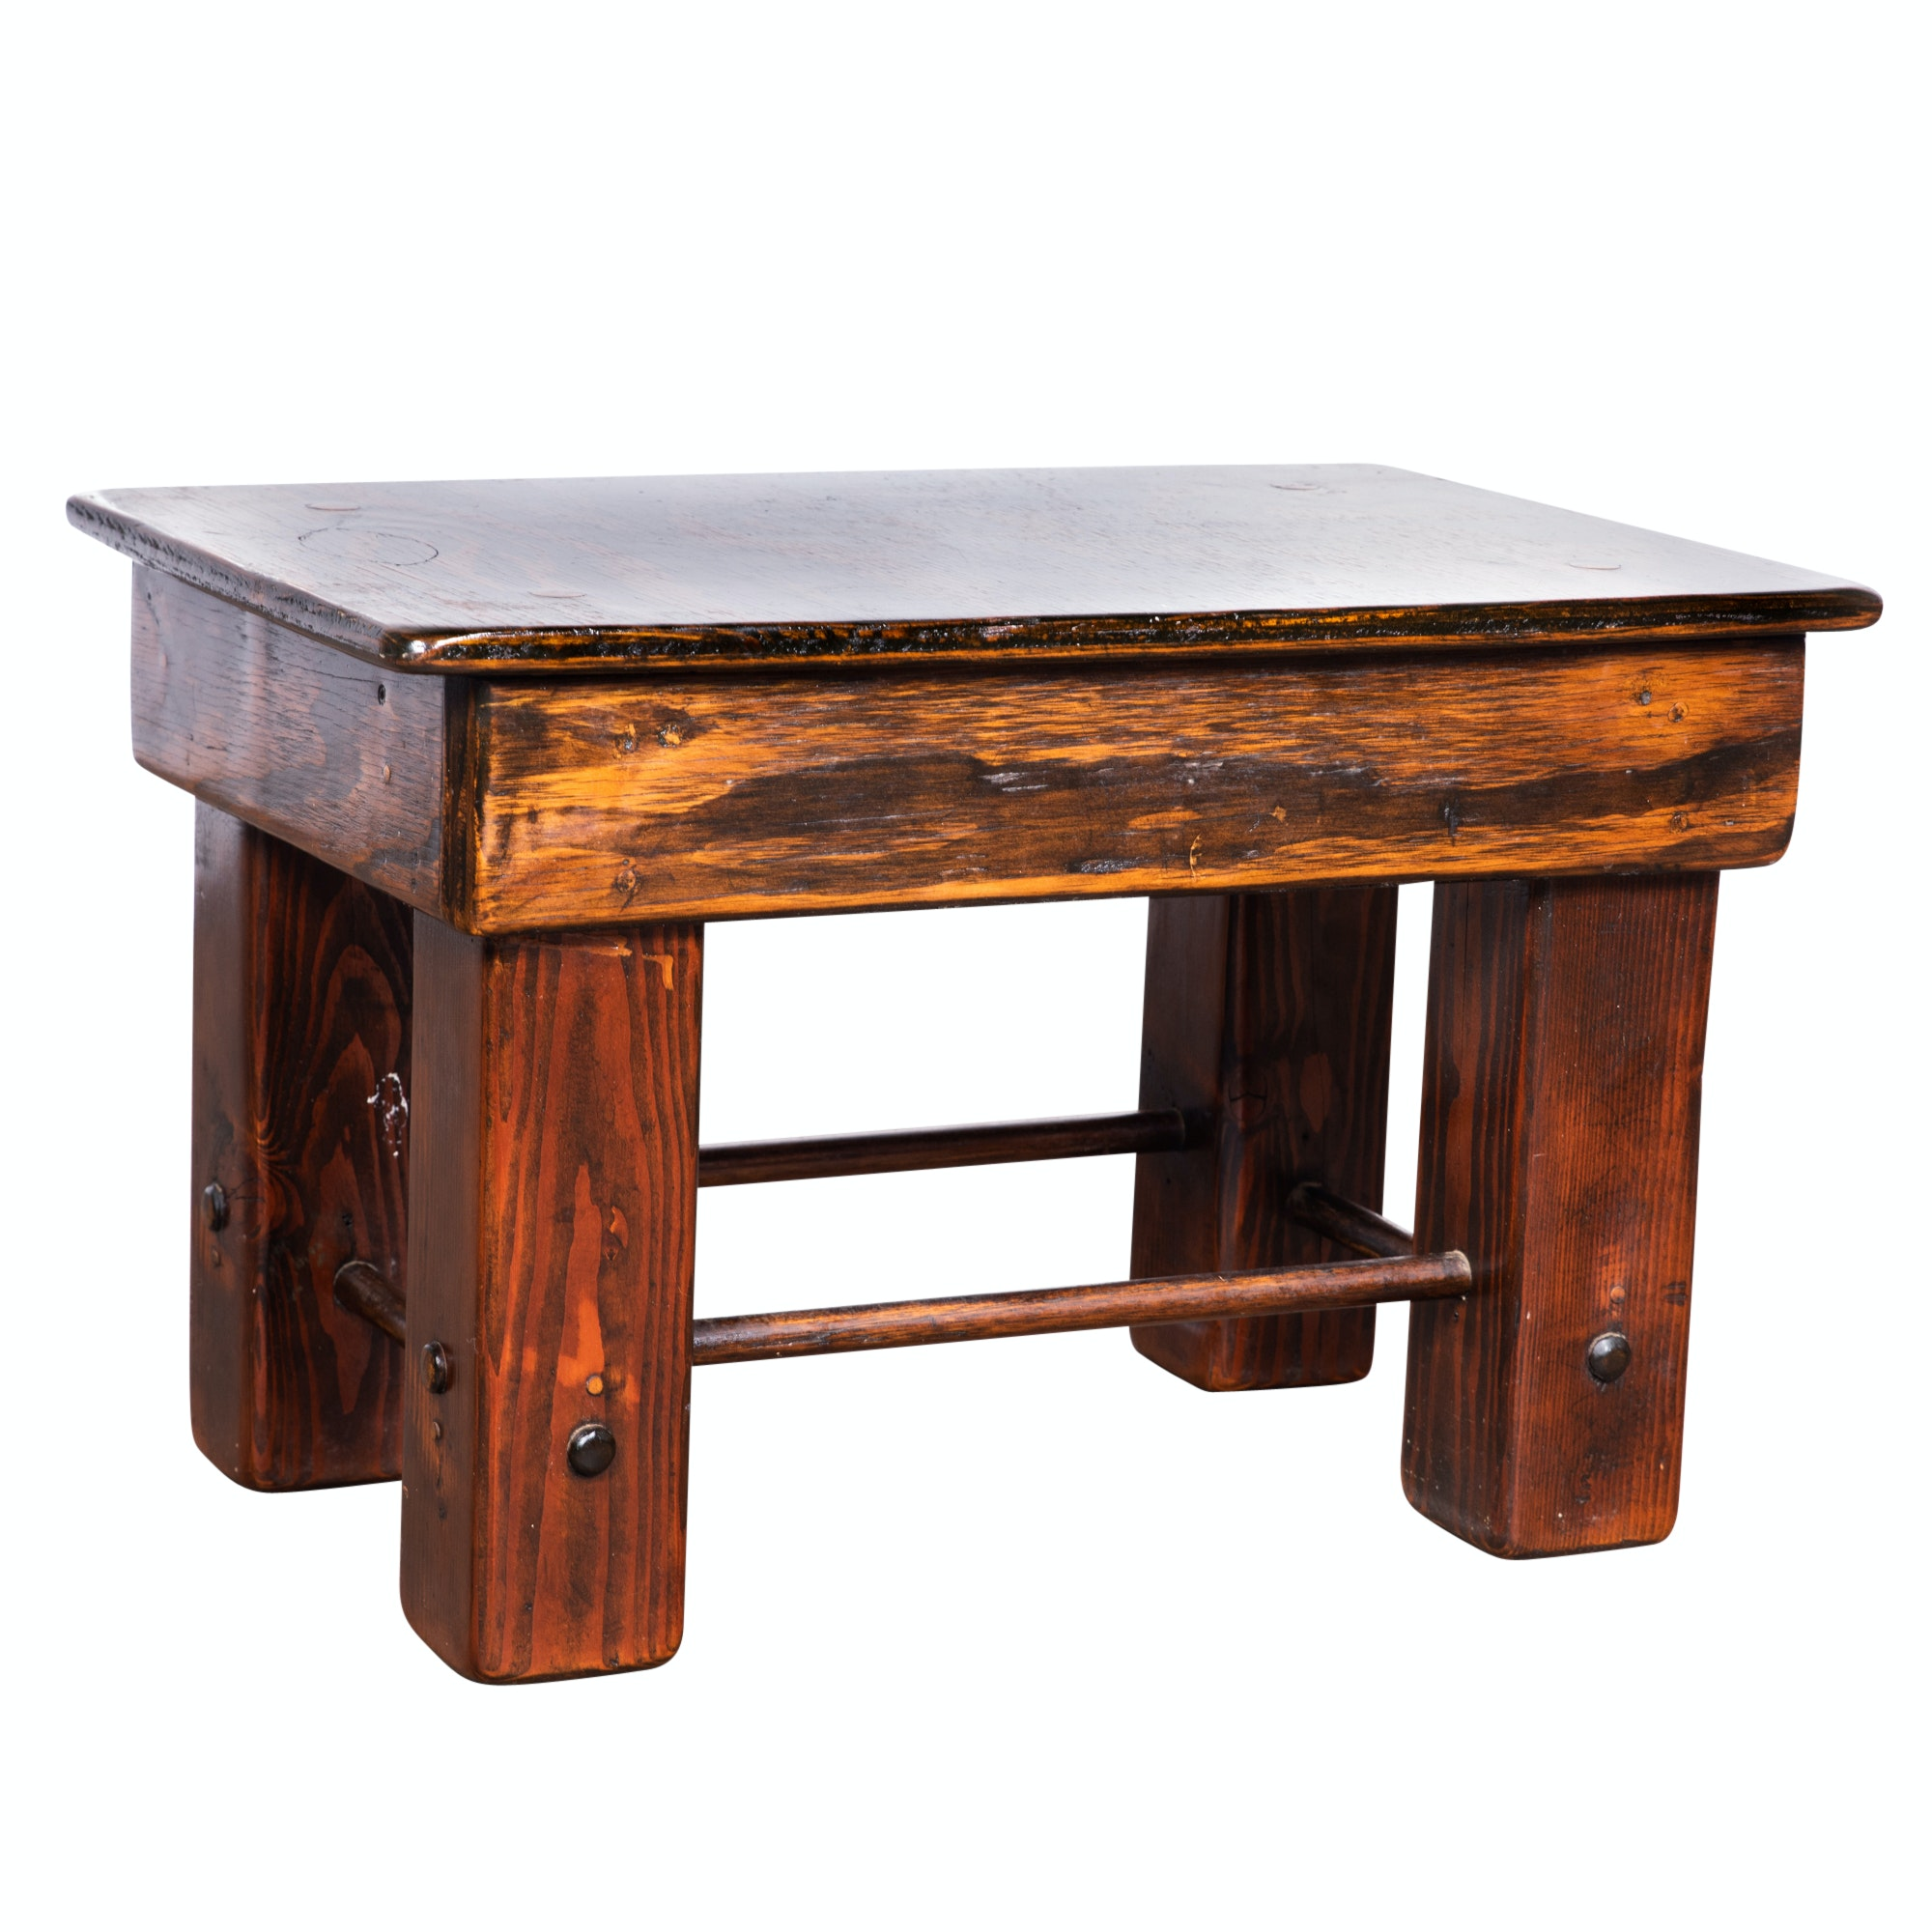 Rustic Style Mixed Wood Footstool, Late 20th Century